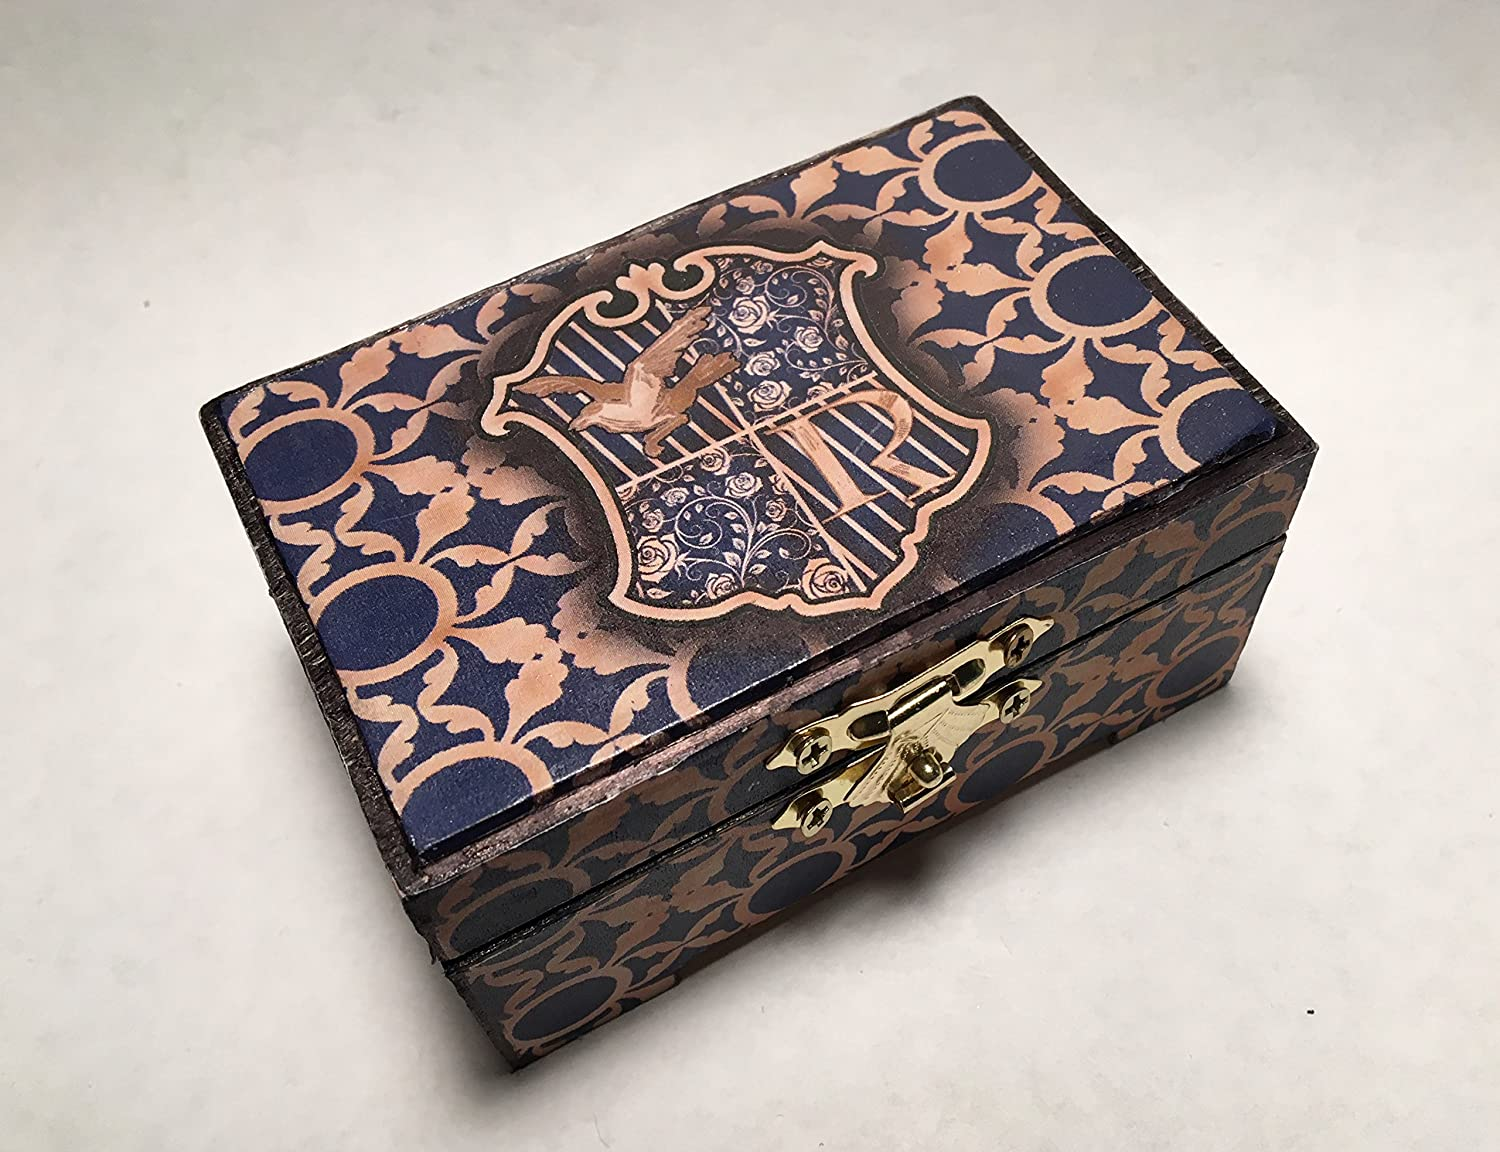 Harry Potter Ravenclaw Hogwarts Inspired Proposal Engagement Ring Box Ring Bearer Pillow Box Customizable